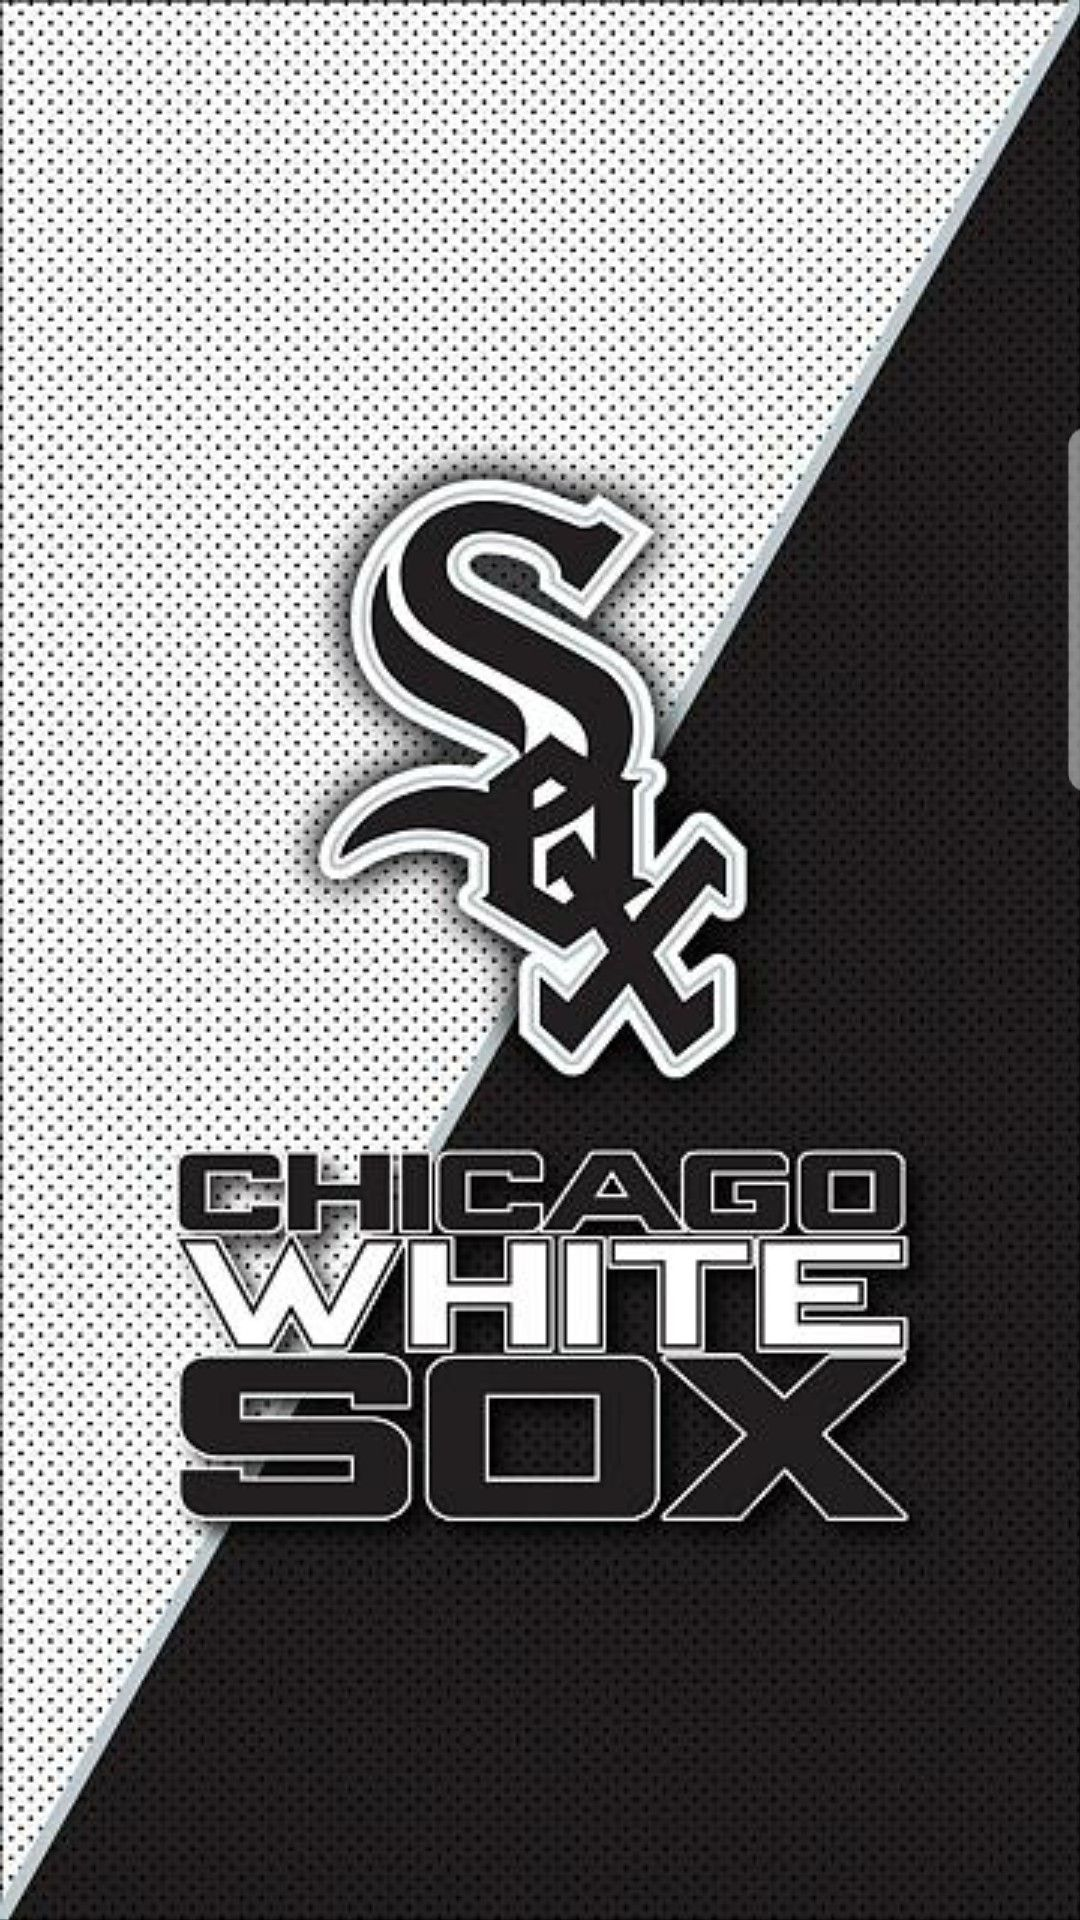 Pin By Archie Douglas On Sportz Wallpaperz Cubs Images White